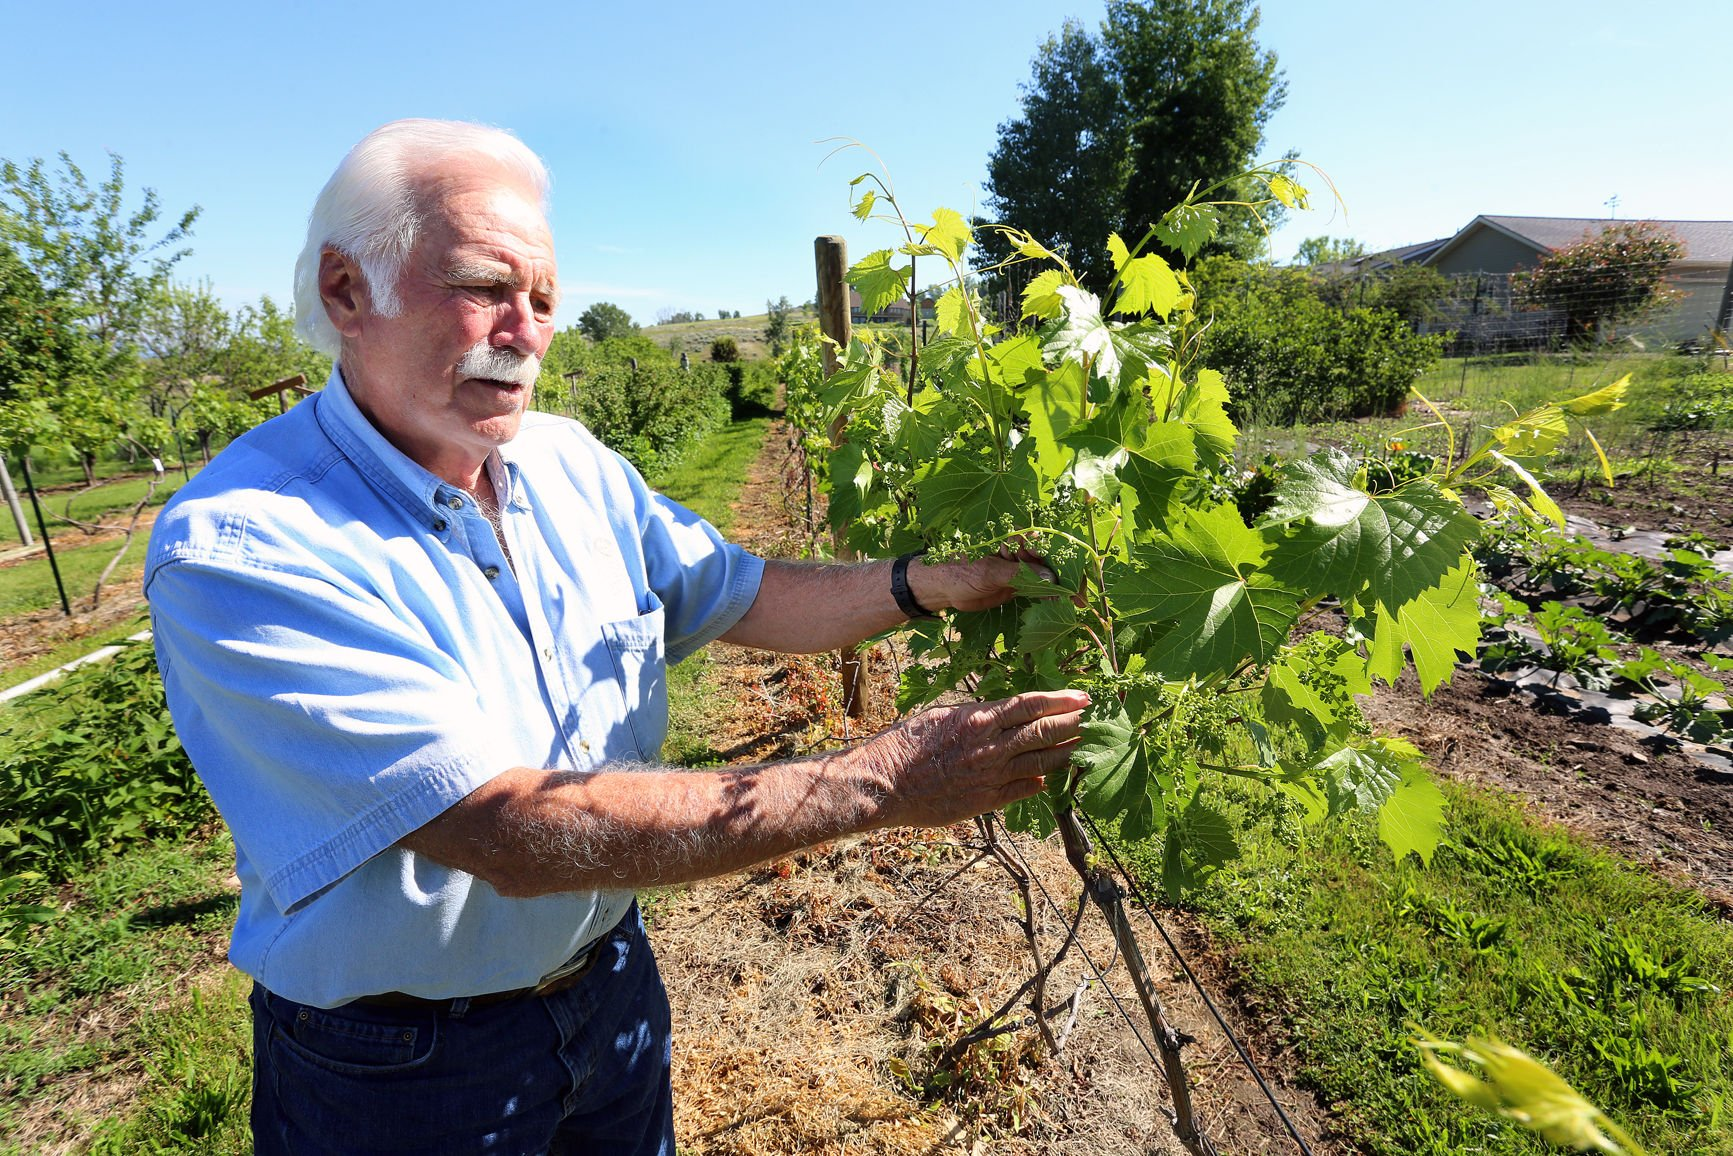 Gardening, viticulture: a selection of articles